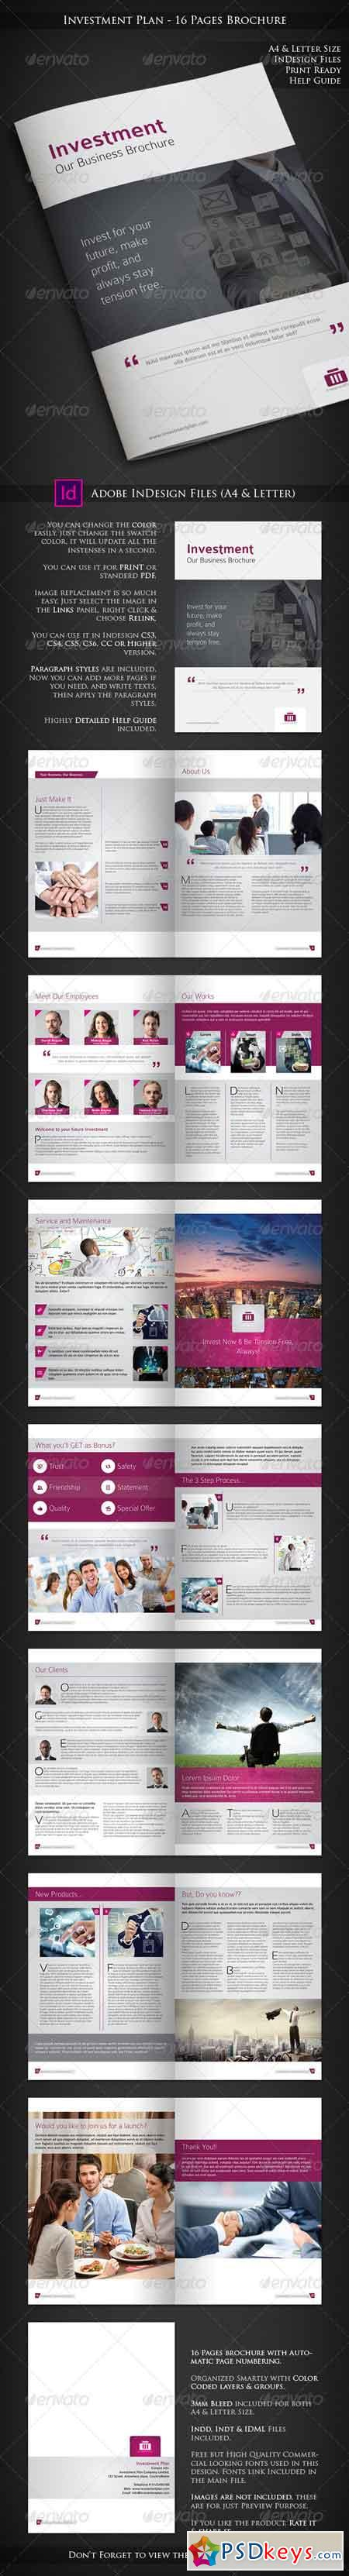 Investment Plan - 16 Pages Business Brochure 6603457